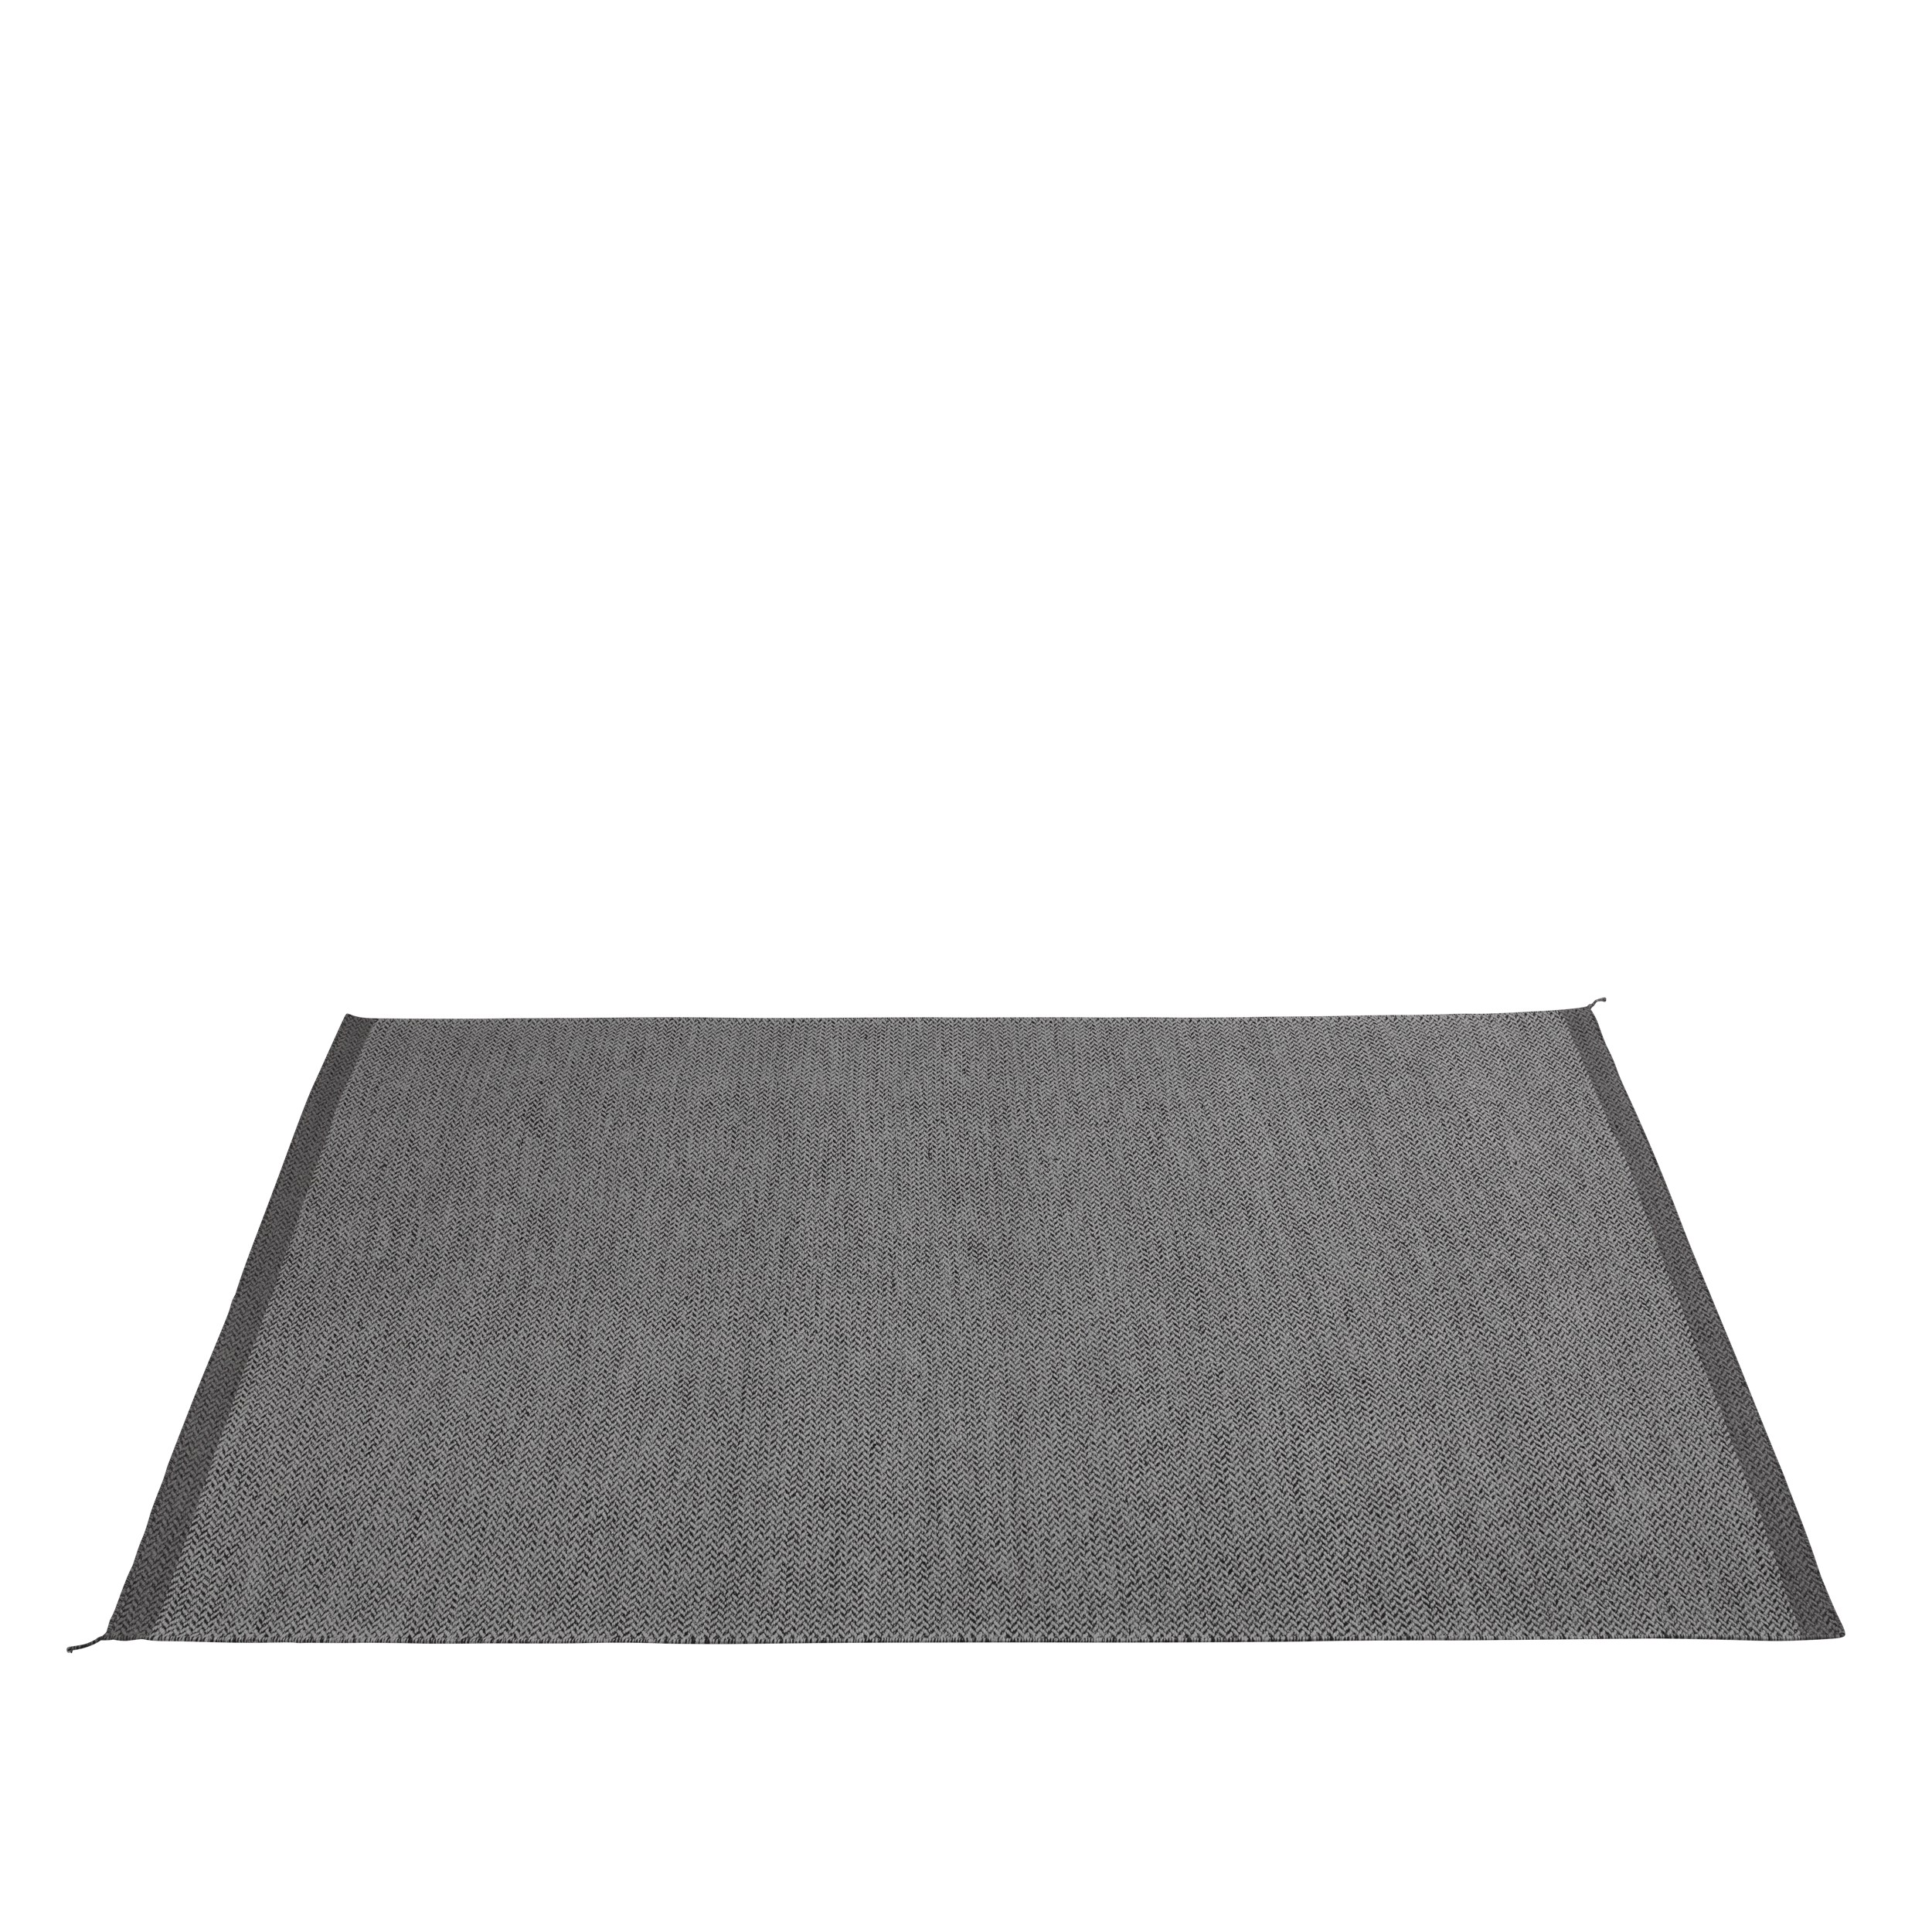 Ply rug 200 x 300 dark grey